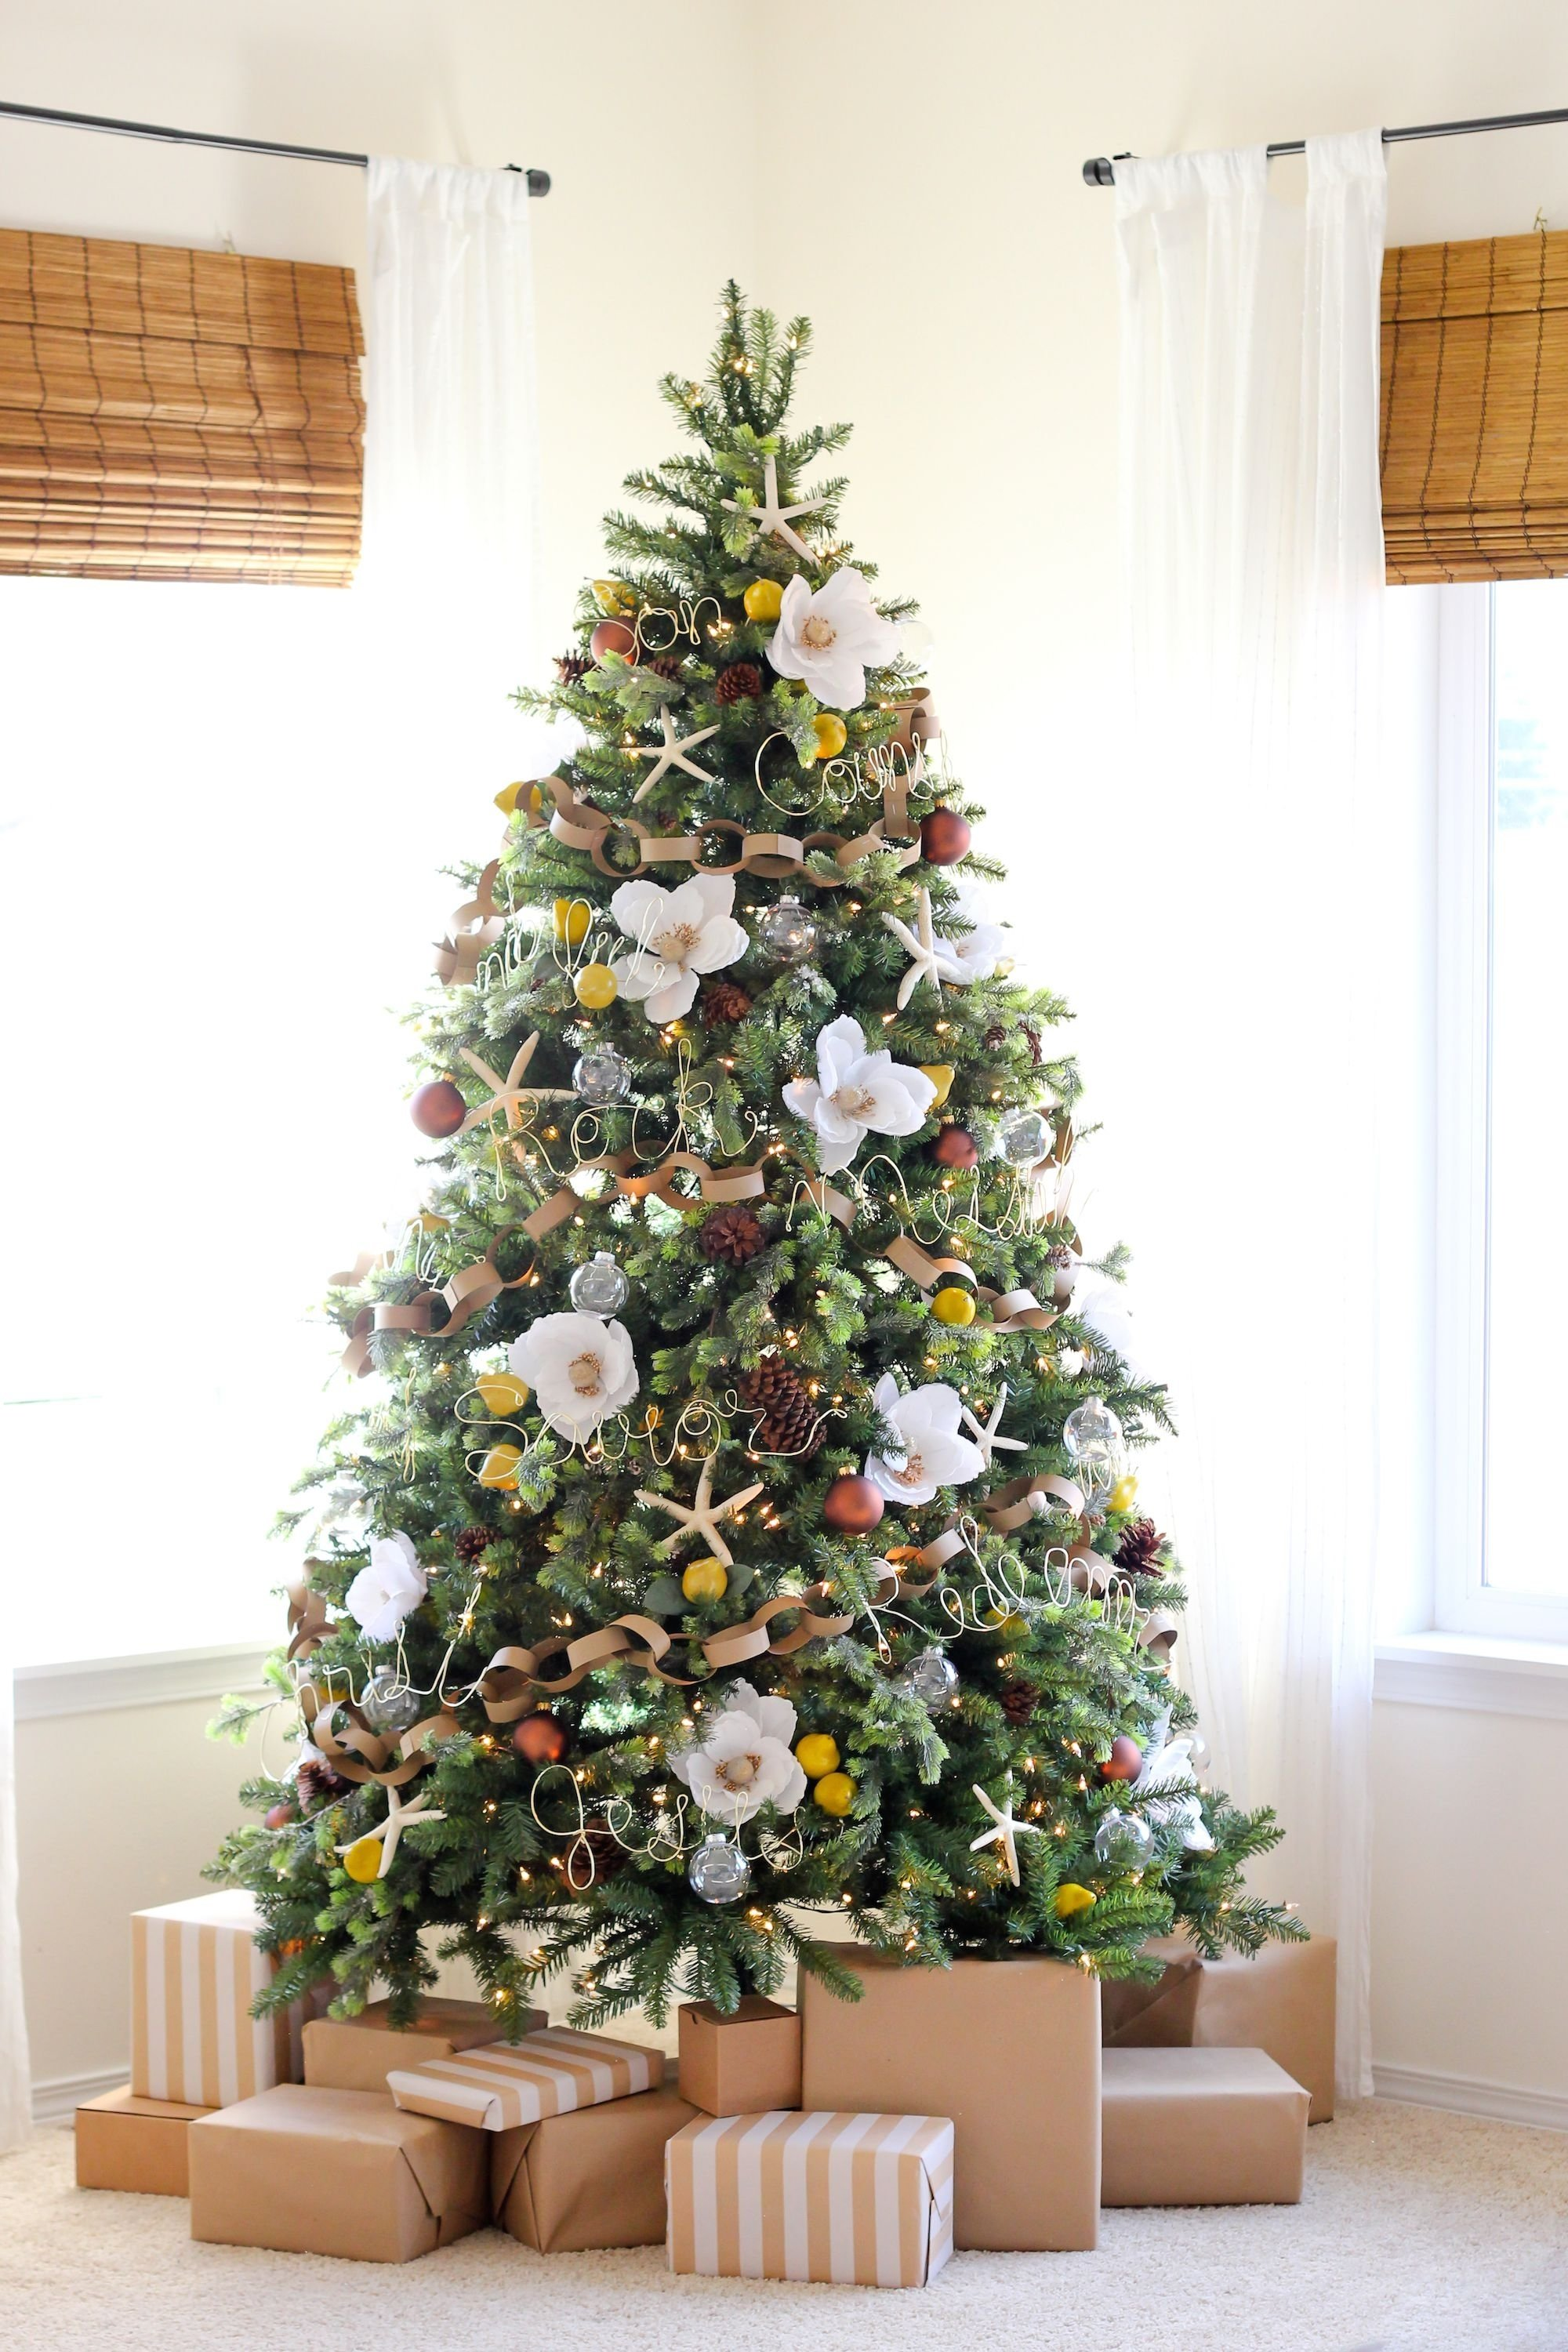 10 Fashionable Ideas To Decorate A Christmas Tree 30 beautiful christmas tree decoration ideas 2017 11 2020